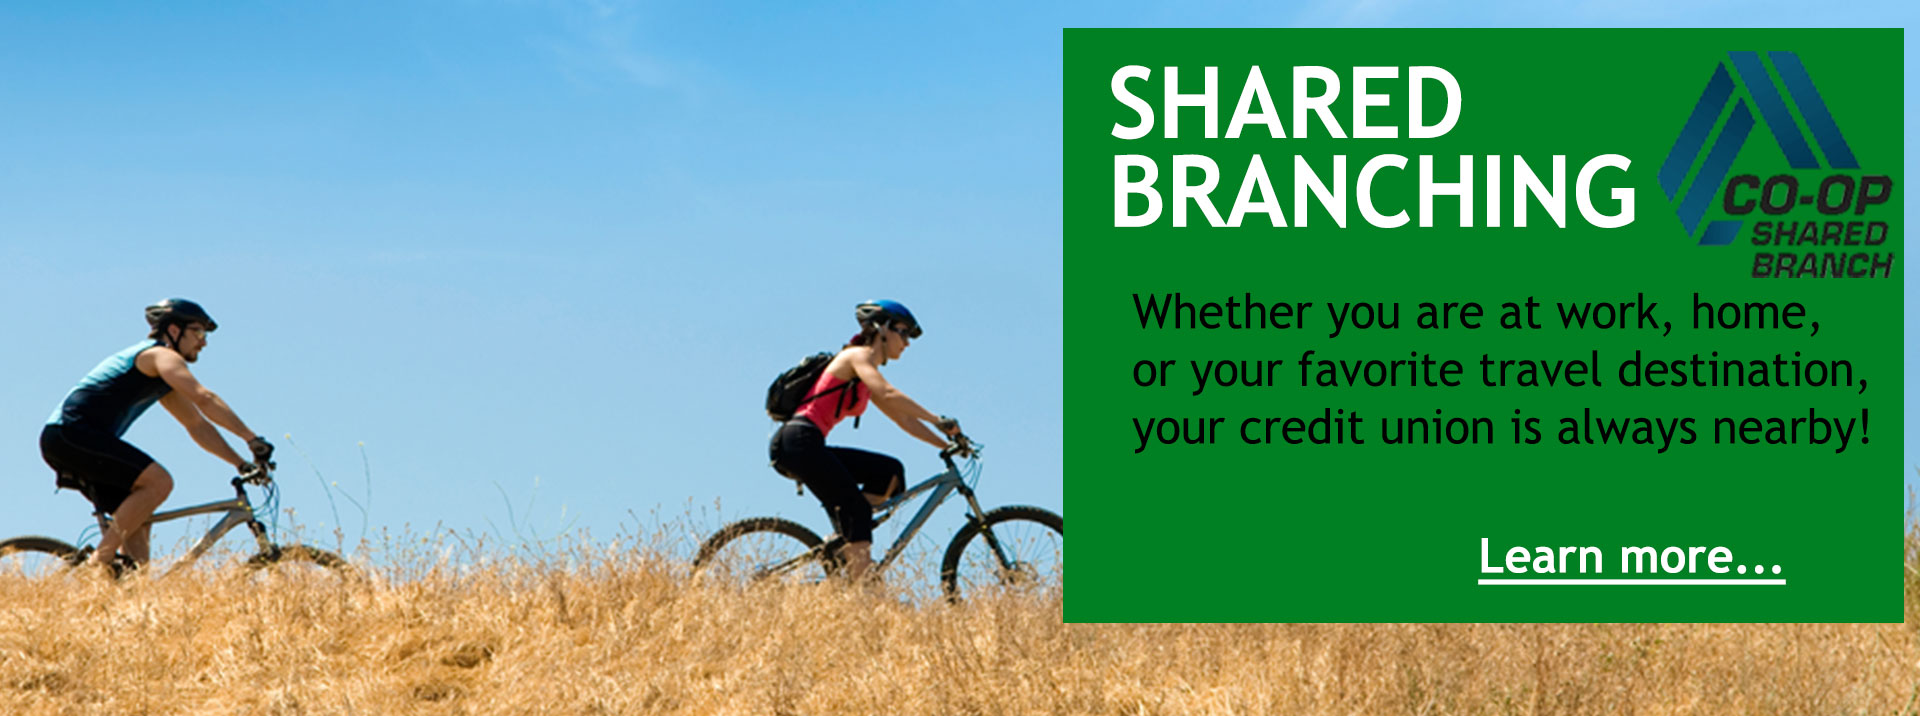 Shared branching - your credit union is always nearby